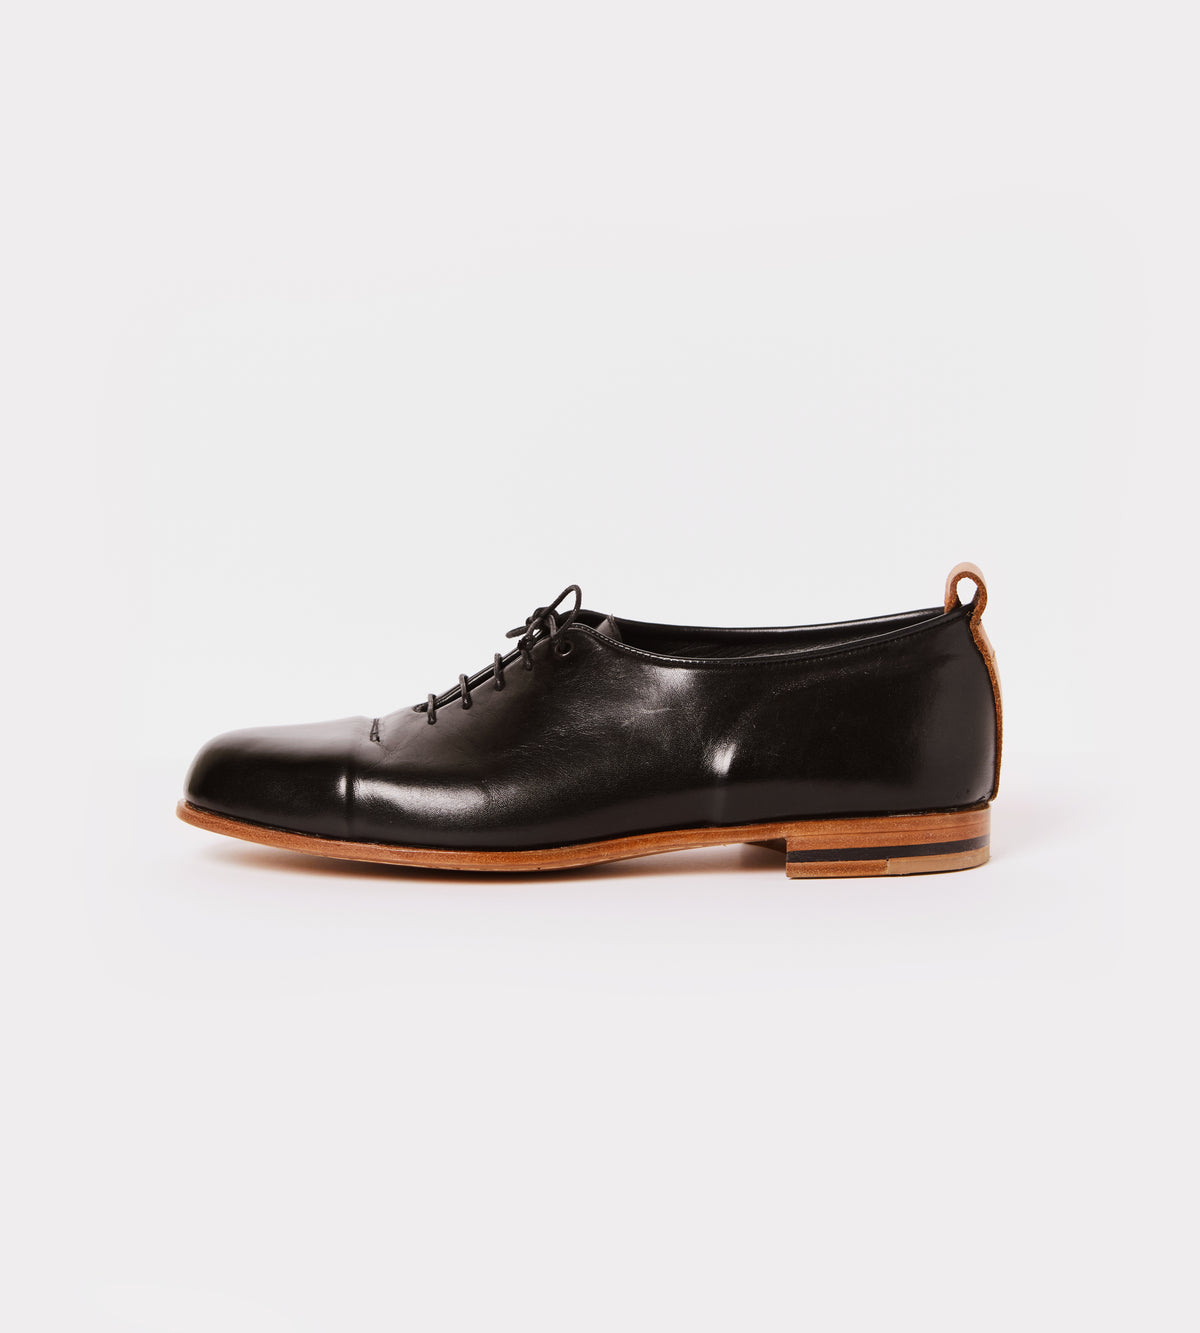 Black calf leather wholecut shoe outside view